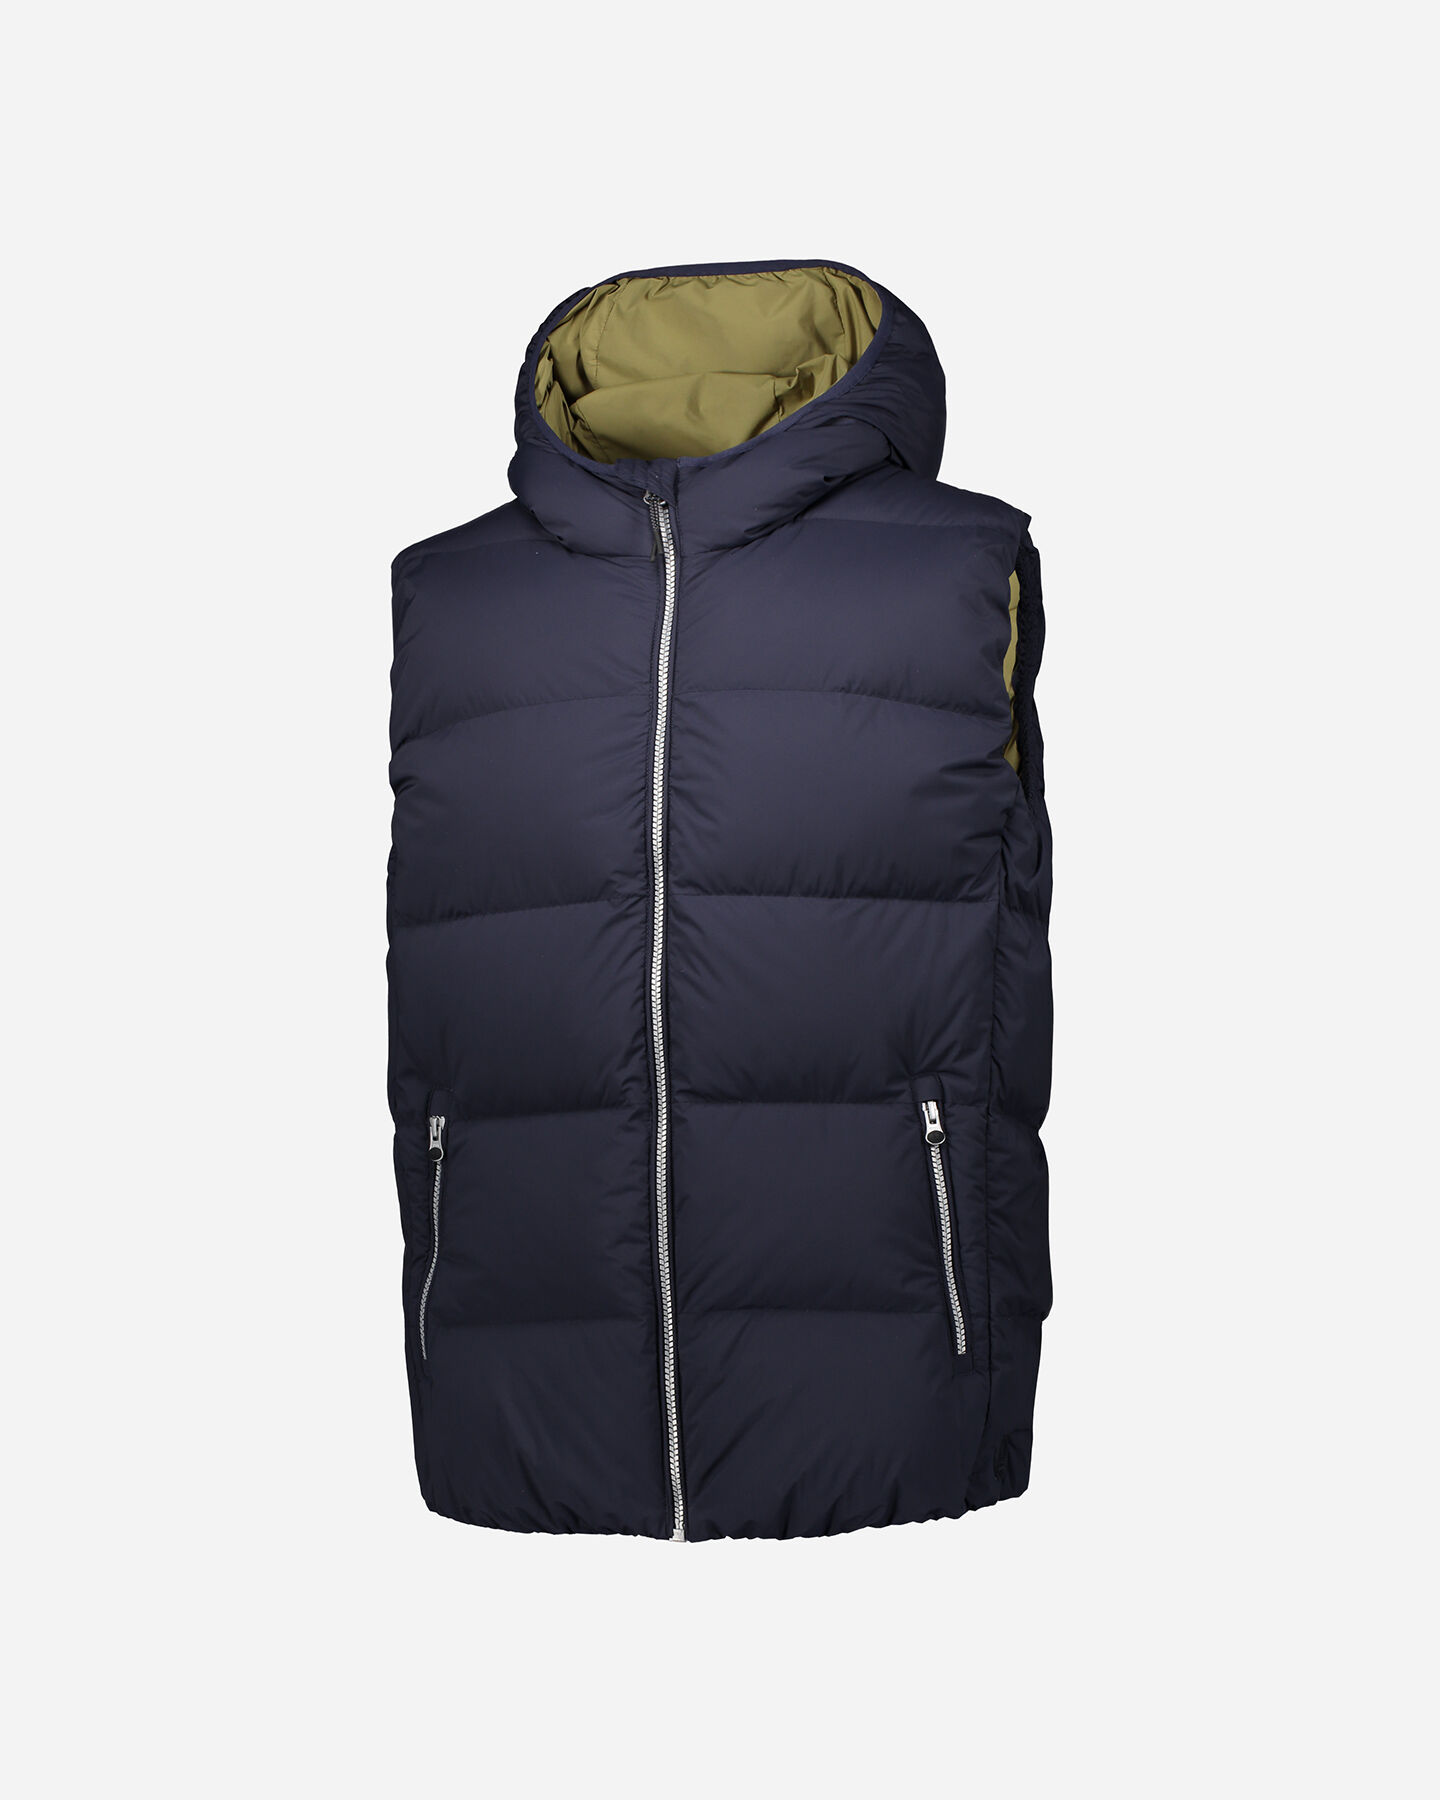 Gilet BEST COMPANY HOODIE M S4069322 scatto 5